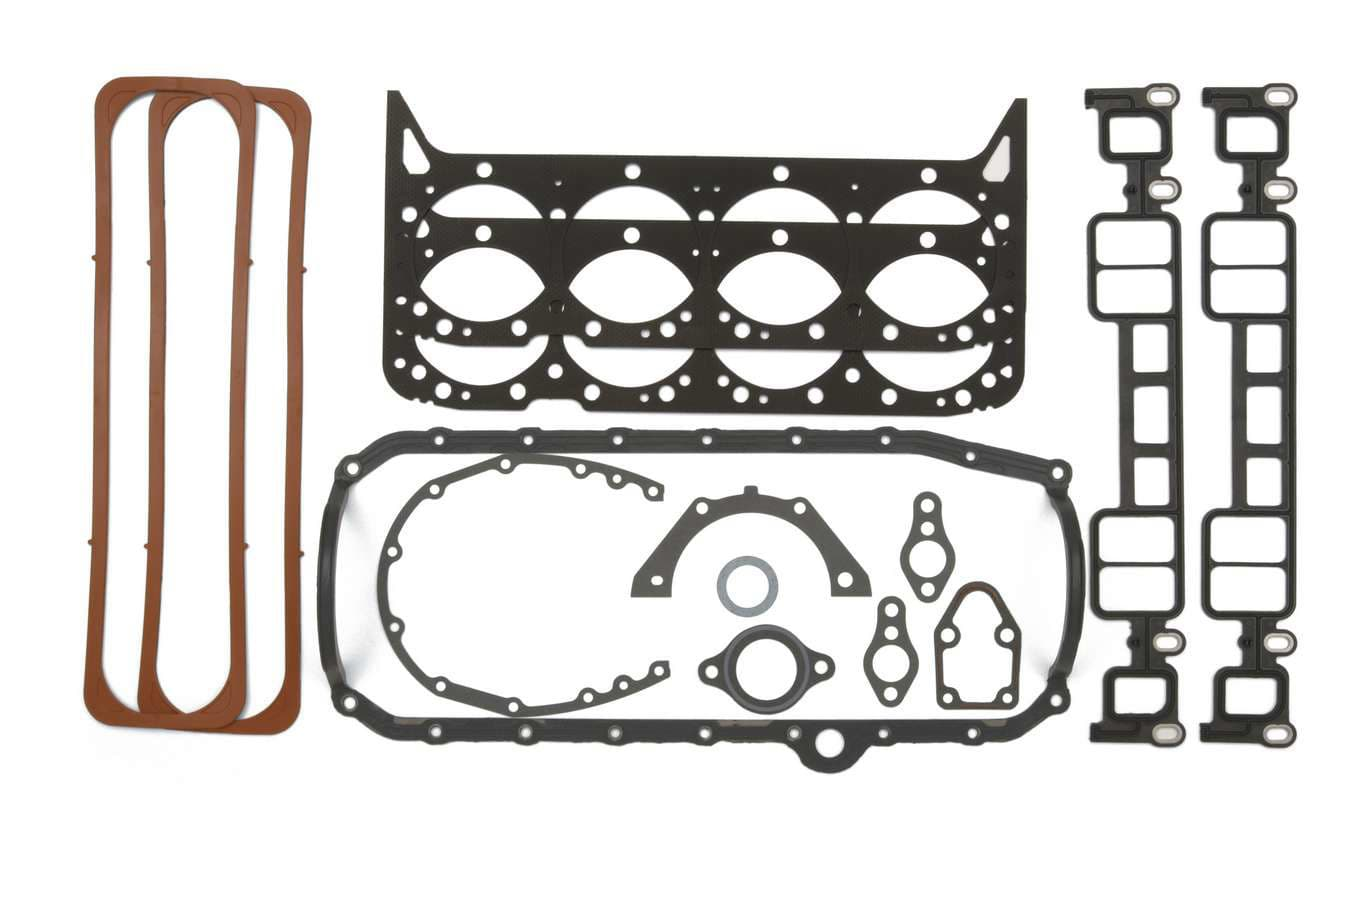 GM Performance Overhaul Gasket Kit - For GM 602 Circle Track Crate Engine